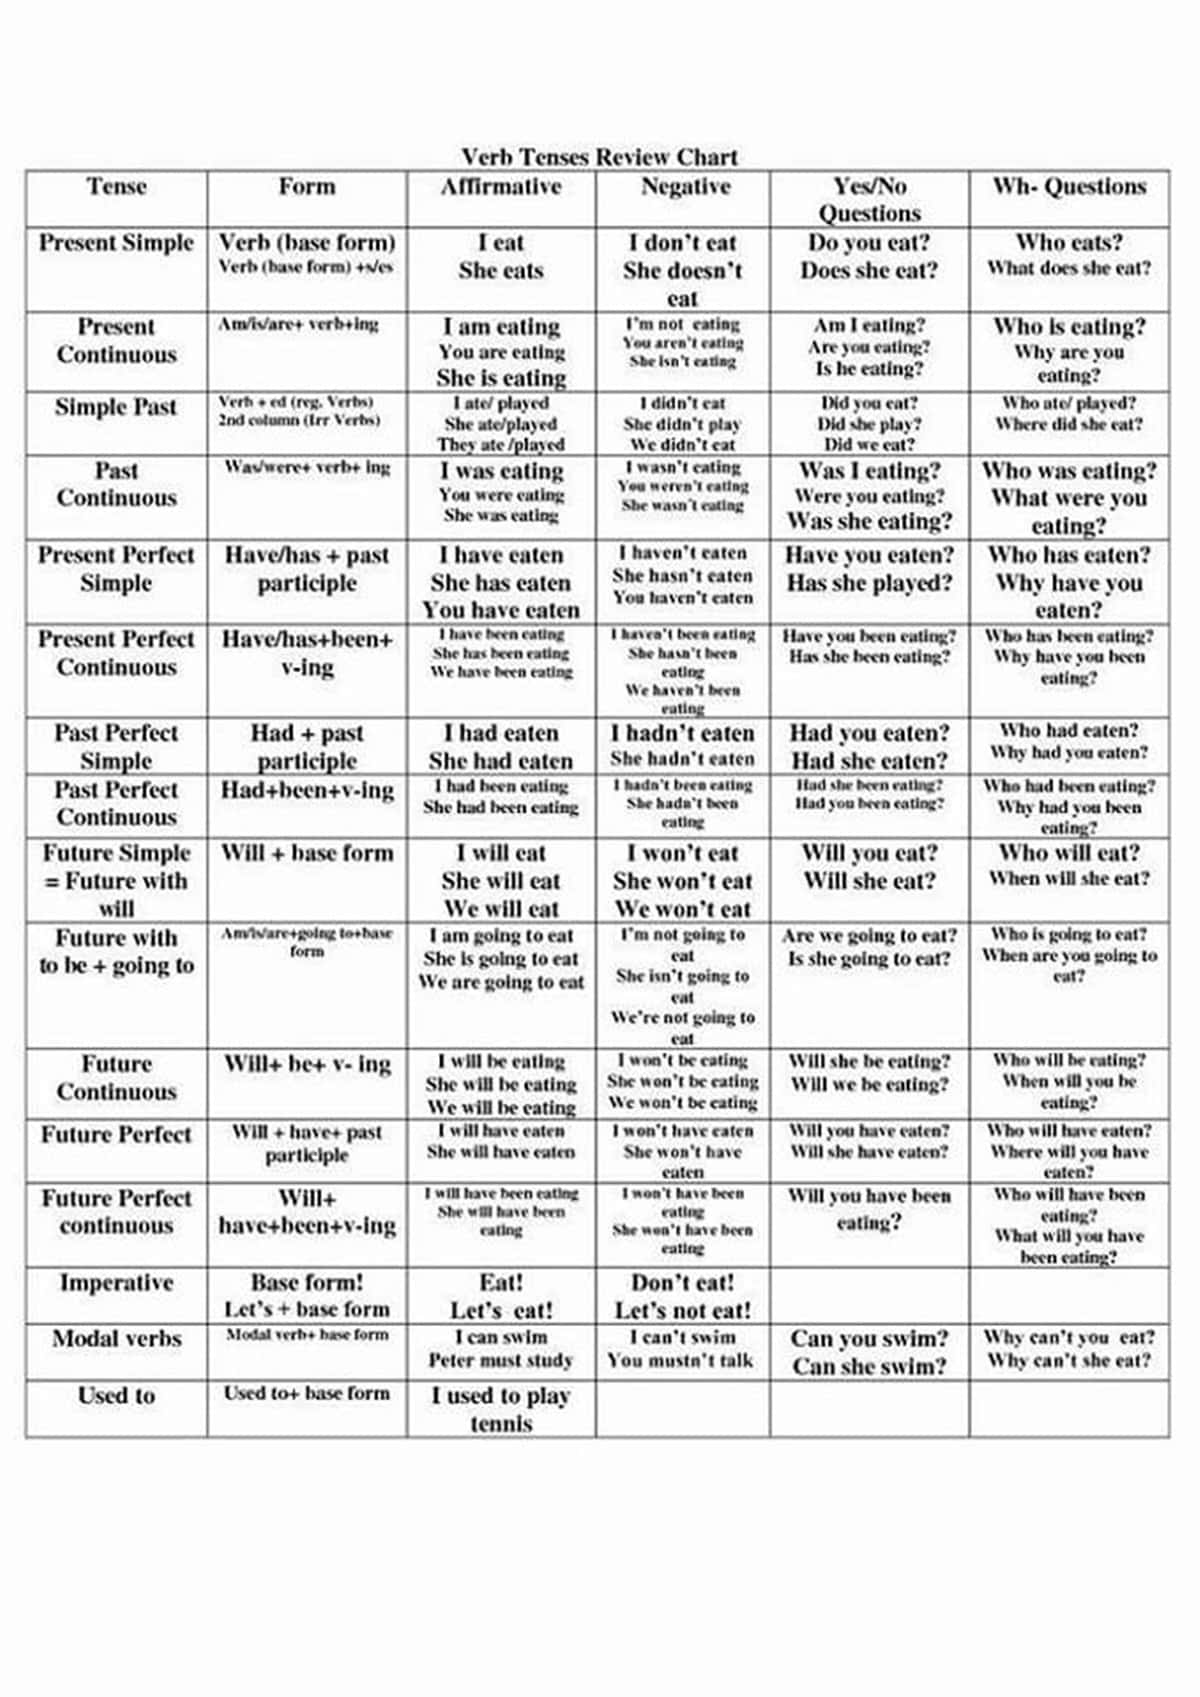 Verb Tenses Review Chart